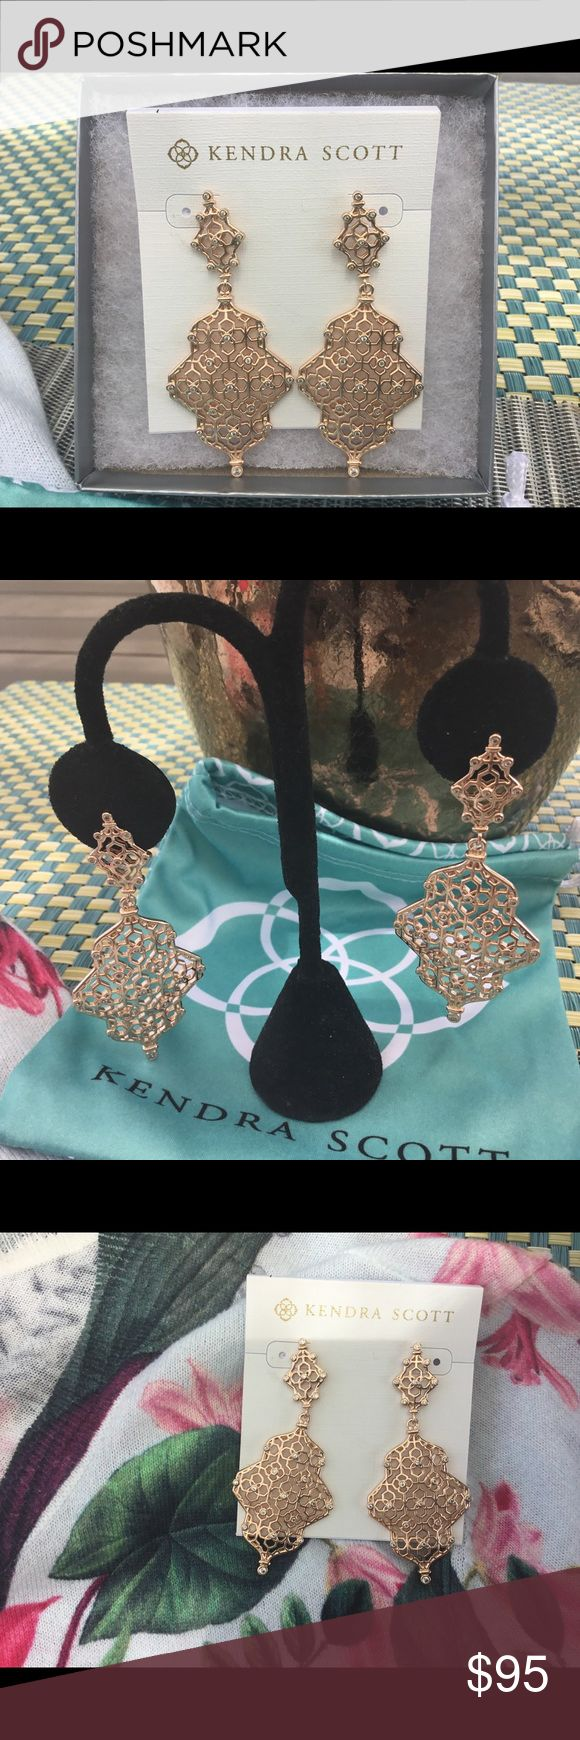 Kendra Scott NWT Rose Gold Renee Filagree Earrings Stunning Renee Rose Gold Intricately woven earrings with beautiful clear crystals. Kendra really went all out on this design as showstoppers. You will get many compliments wearing these. Most dept stores are sold out of them Kendra Scott Jewelry Earrings